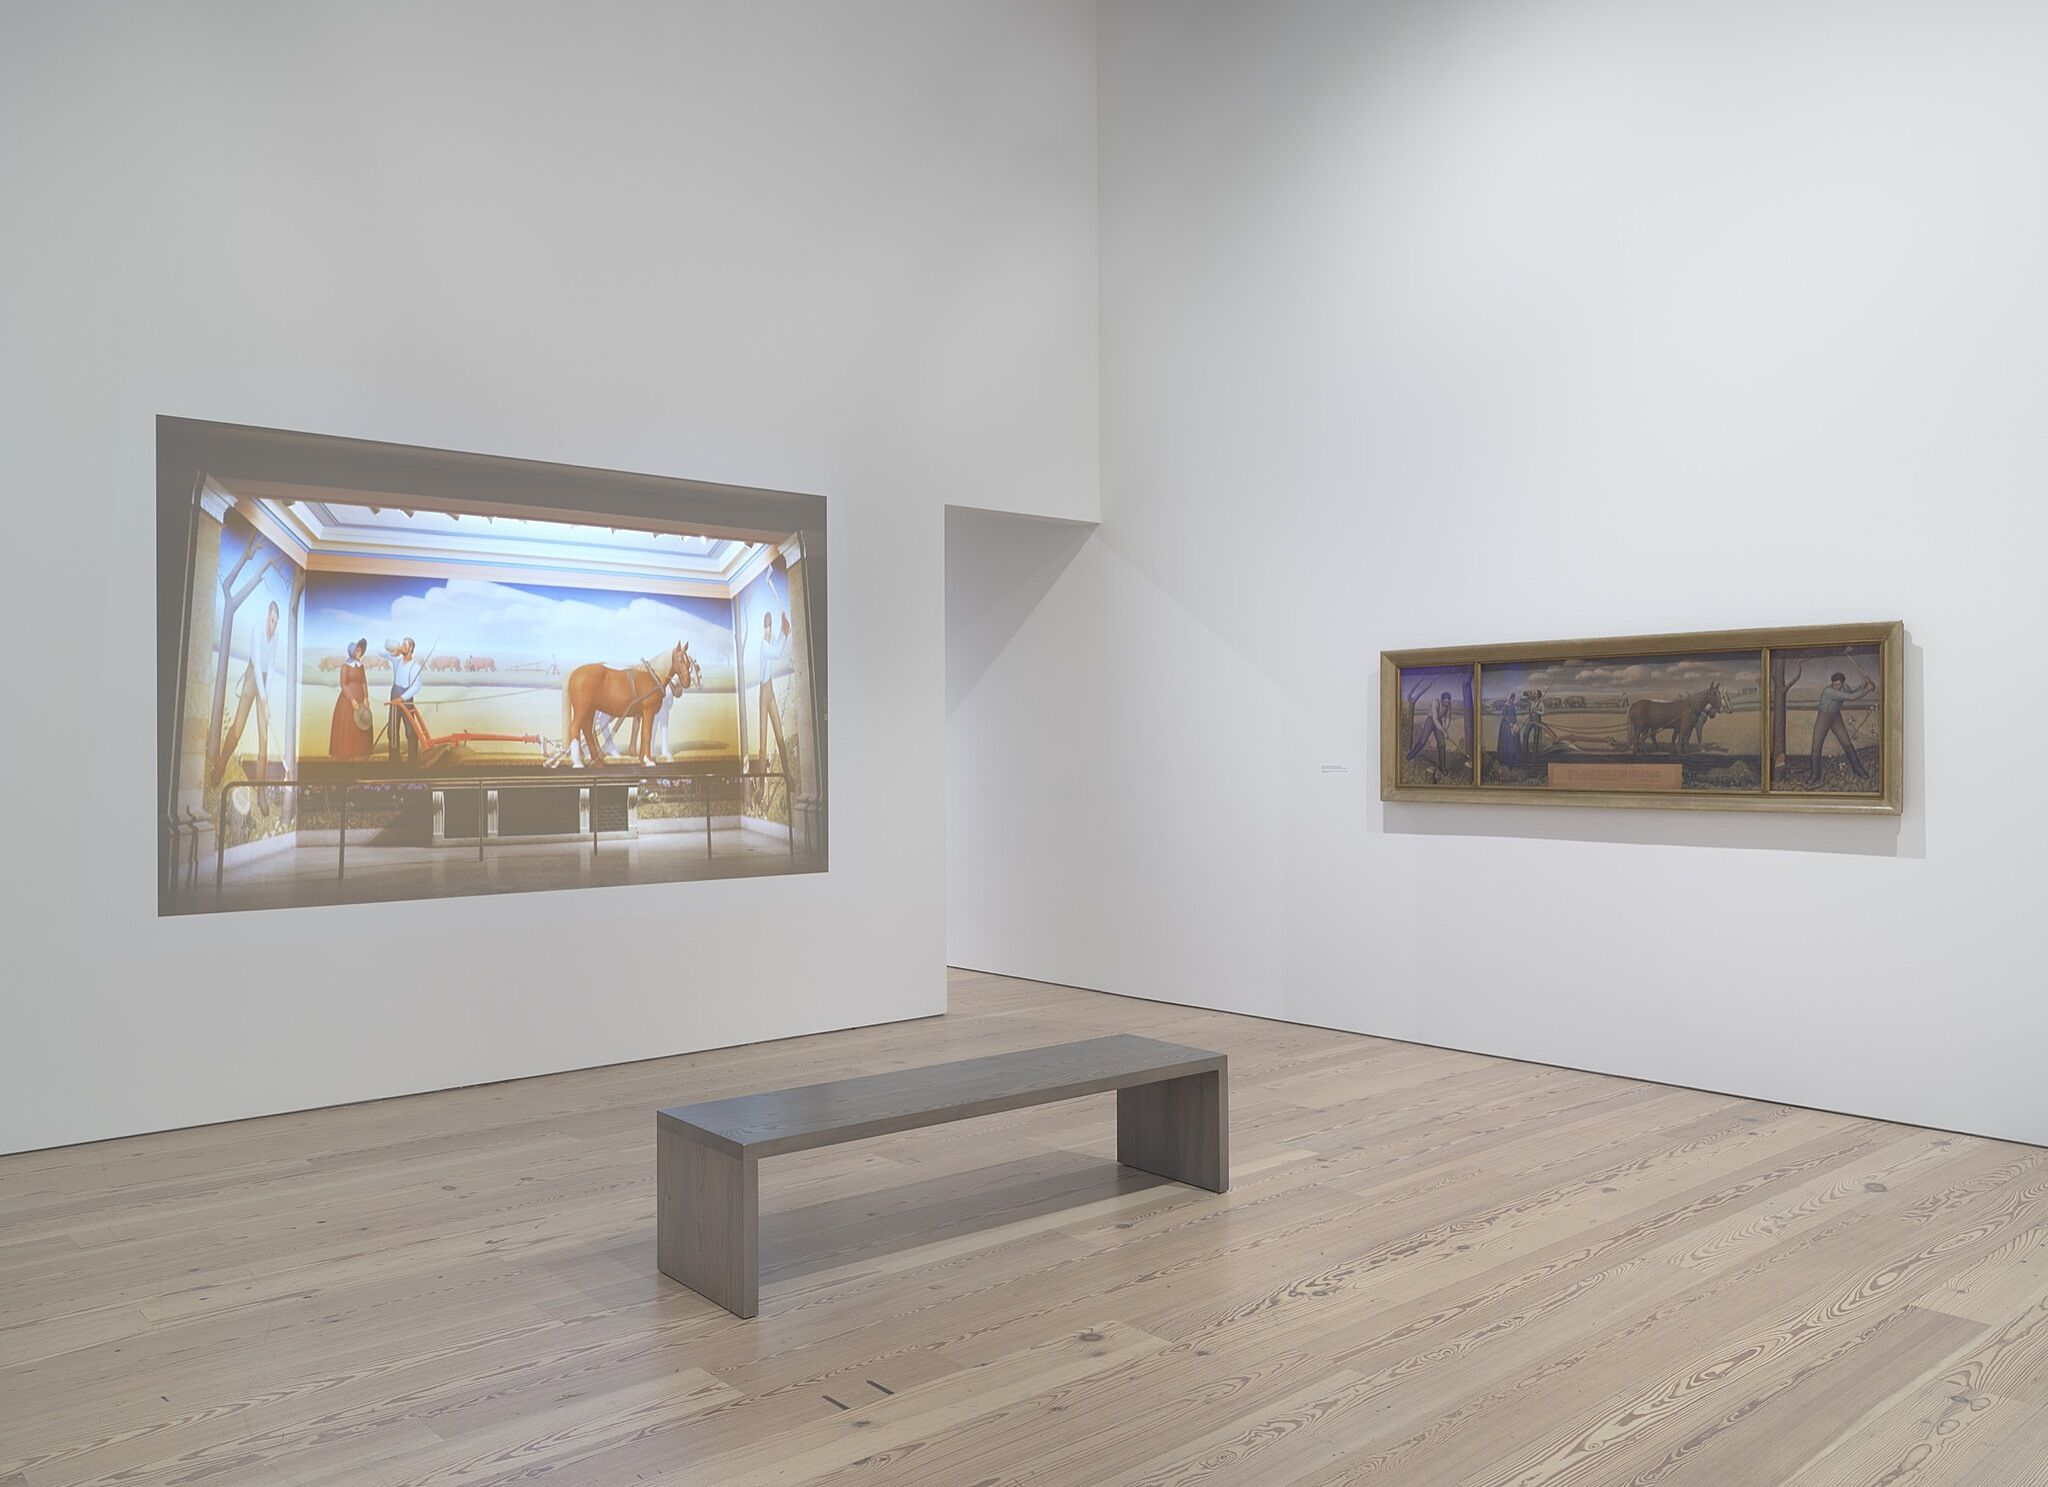 A painting and a video projection in a gallery.